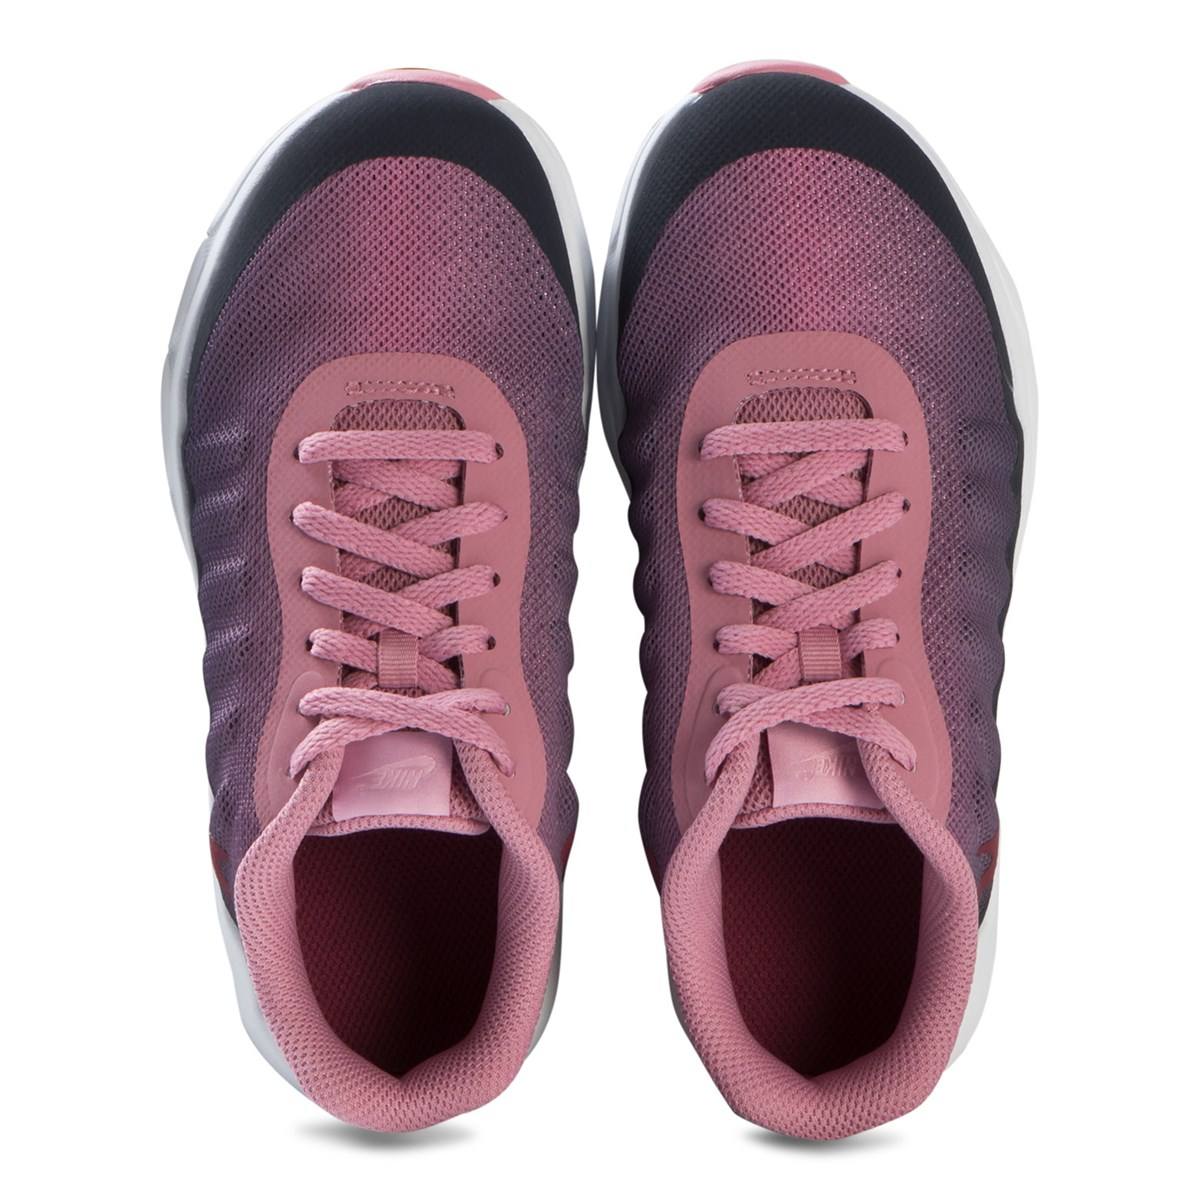 pretty nice 0375d cfc99 Air Max Invigor Infants Skor Rosa - NIKE - Babyshop